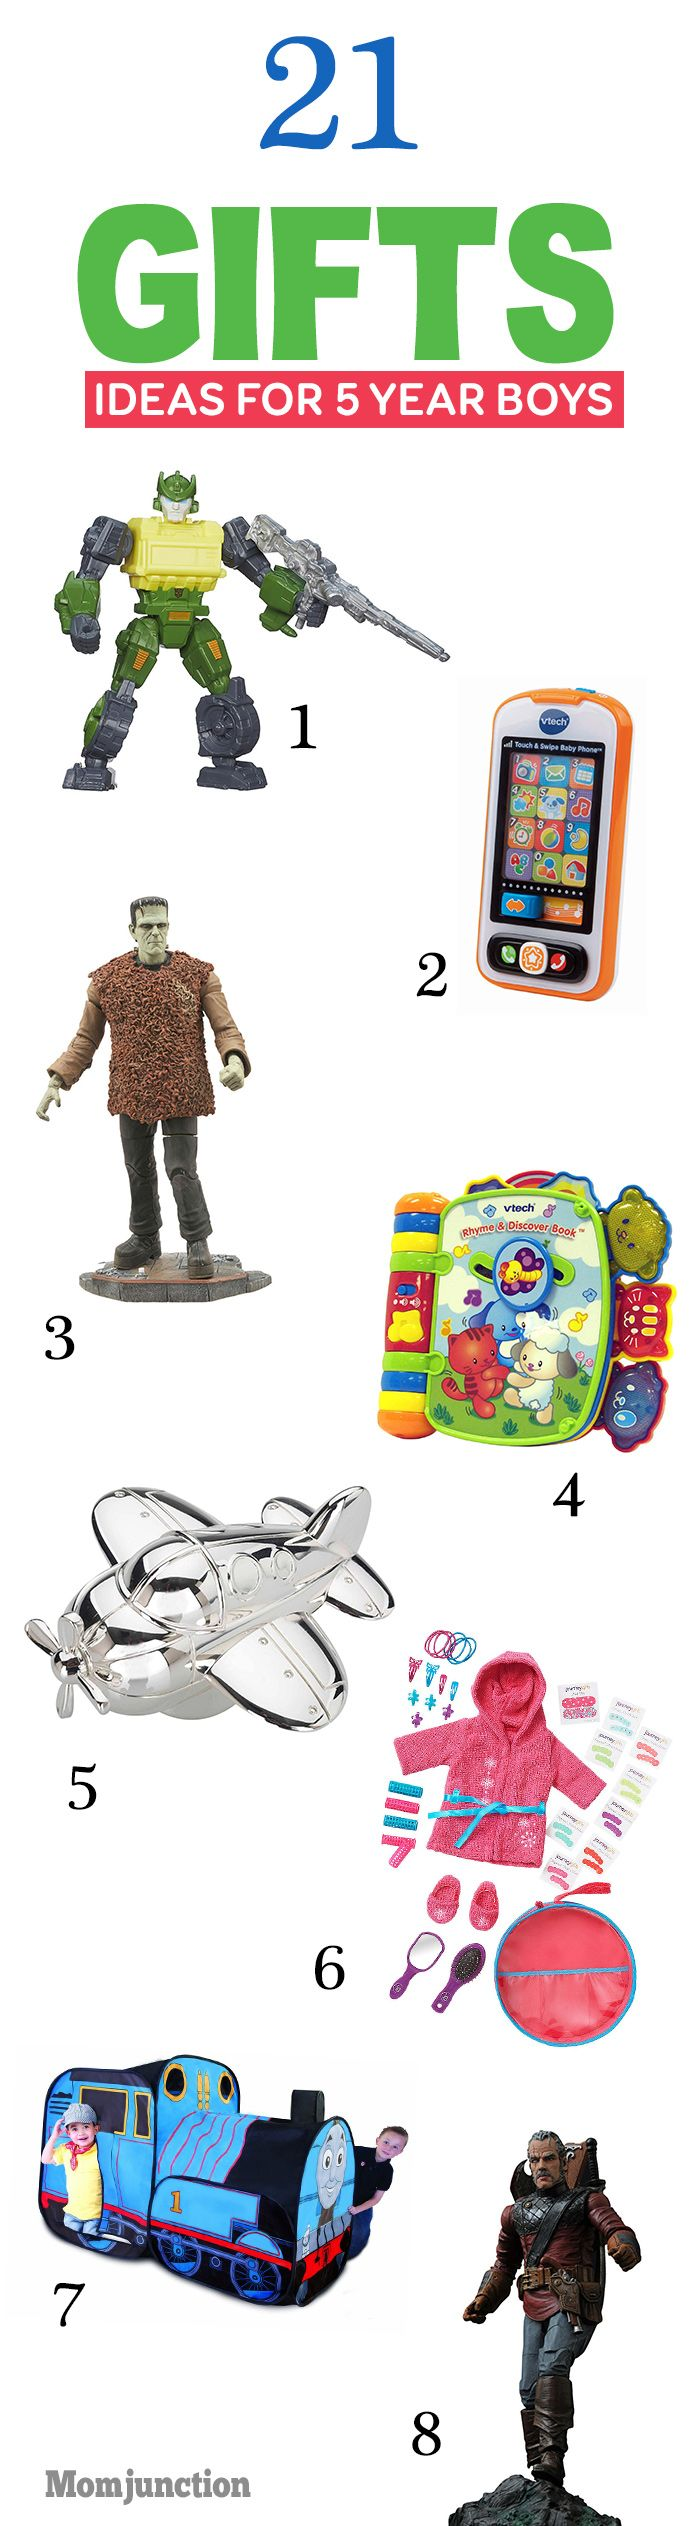 32 best Gifts for kids images on Pinterest | Baby toys, Anniversary ...